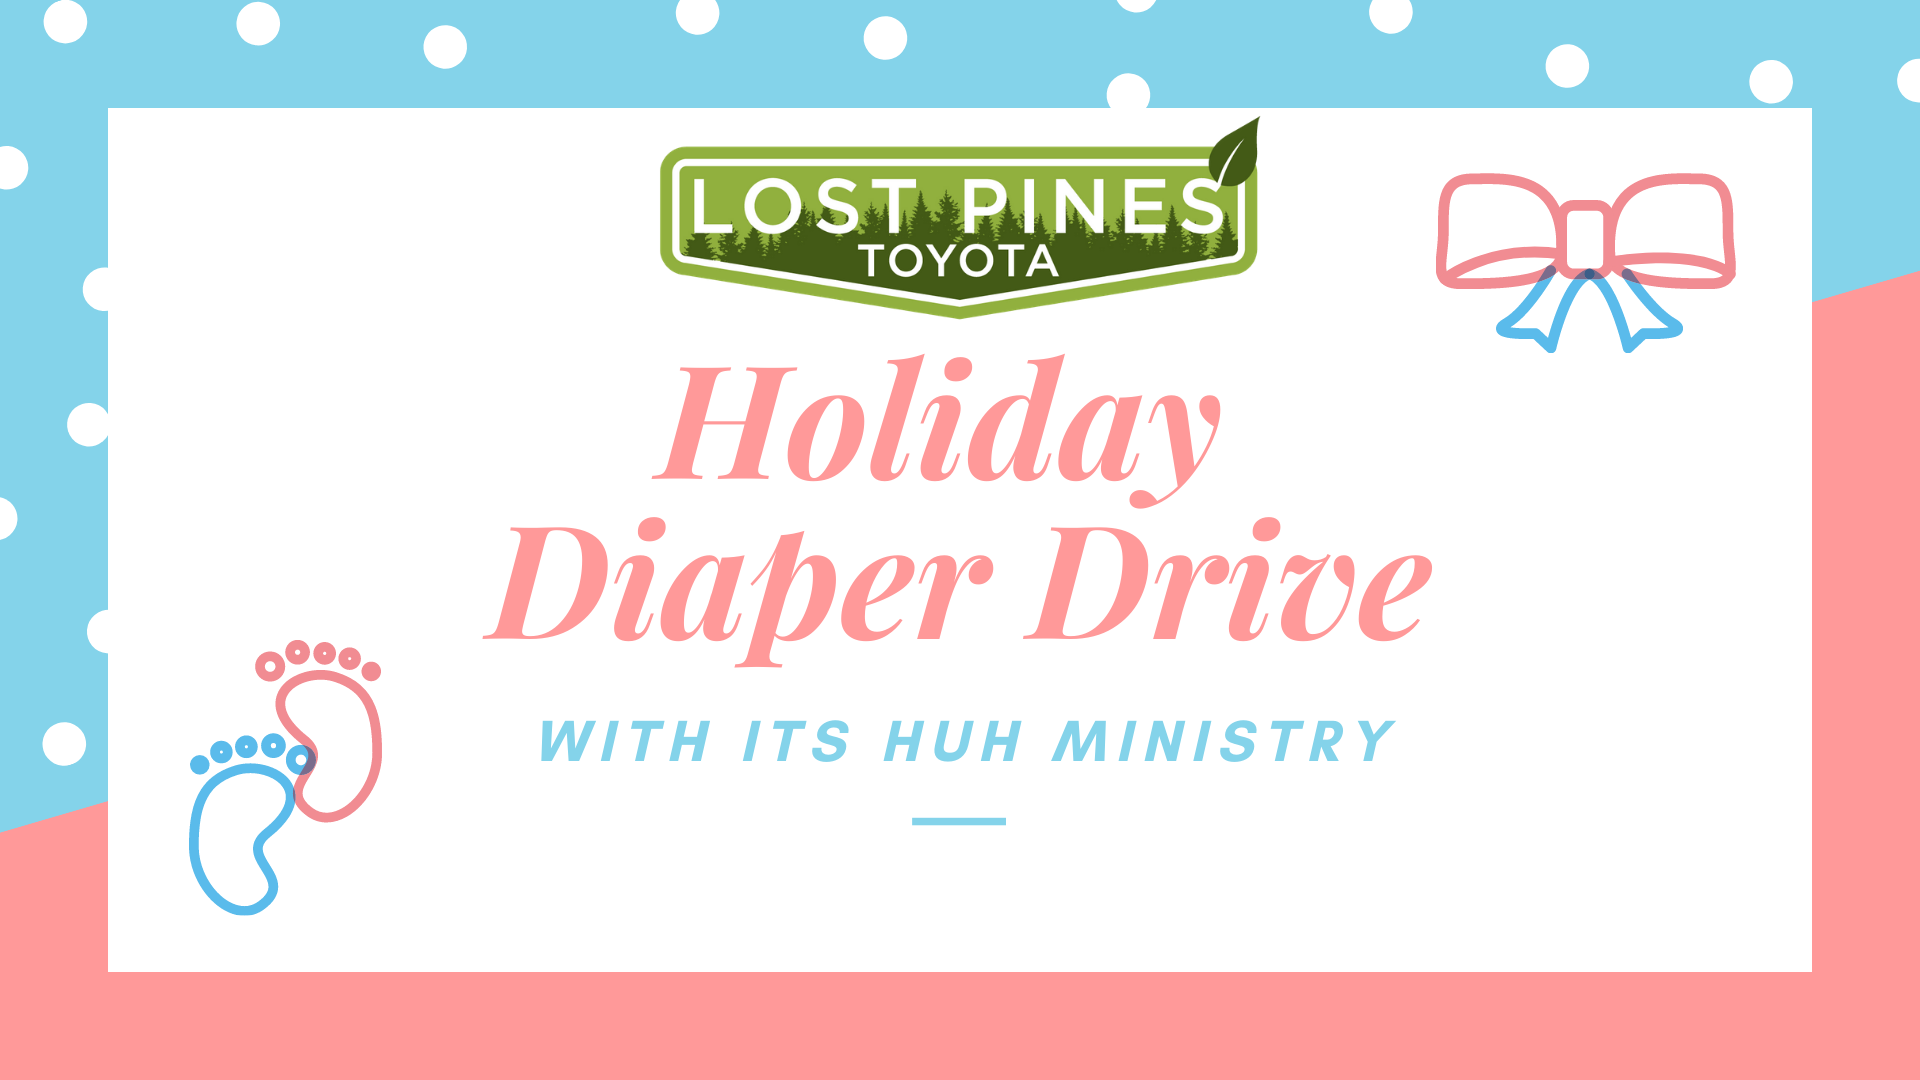 Holiday Diaper Drive at Lost Pines Toyota